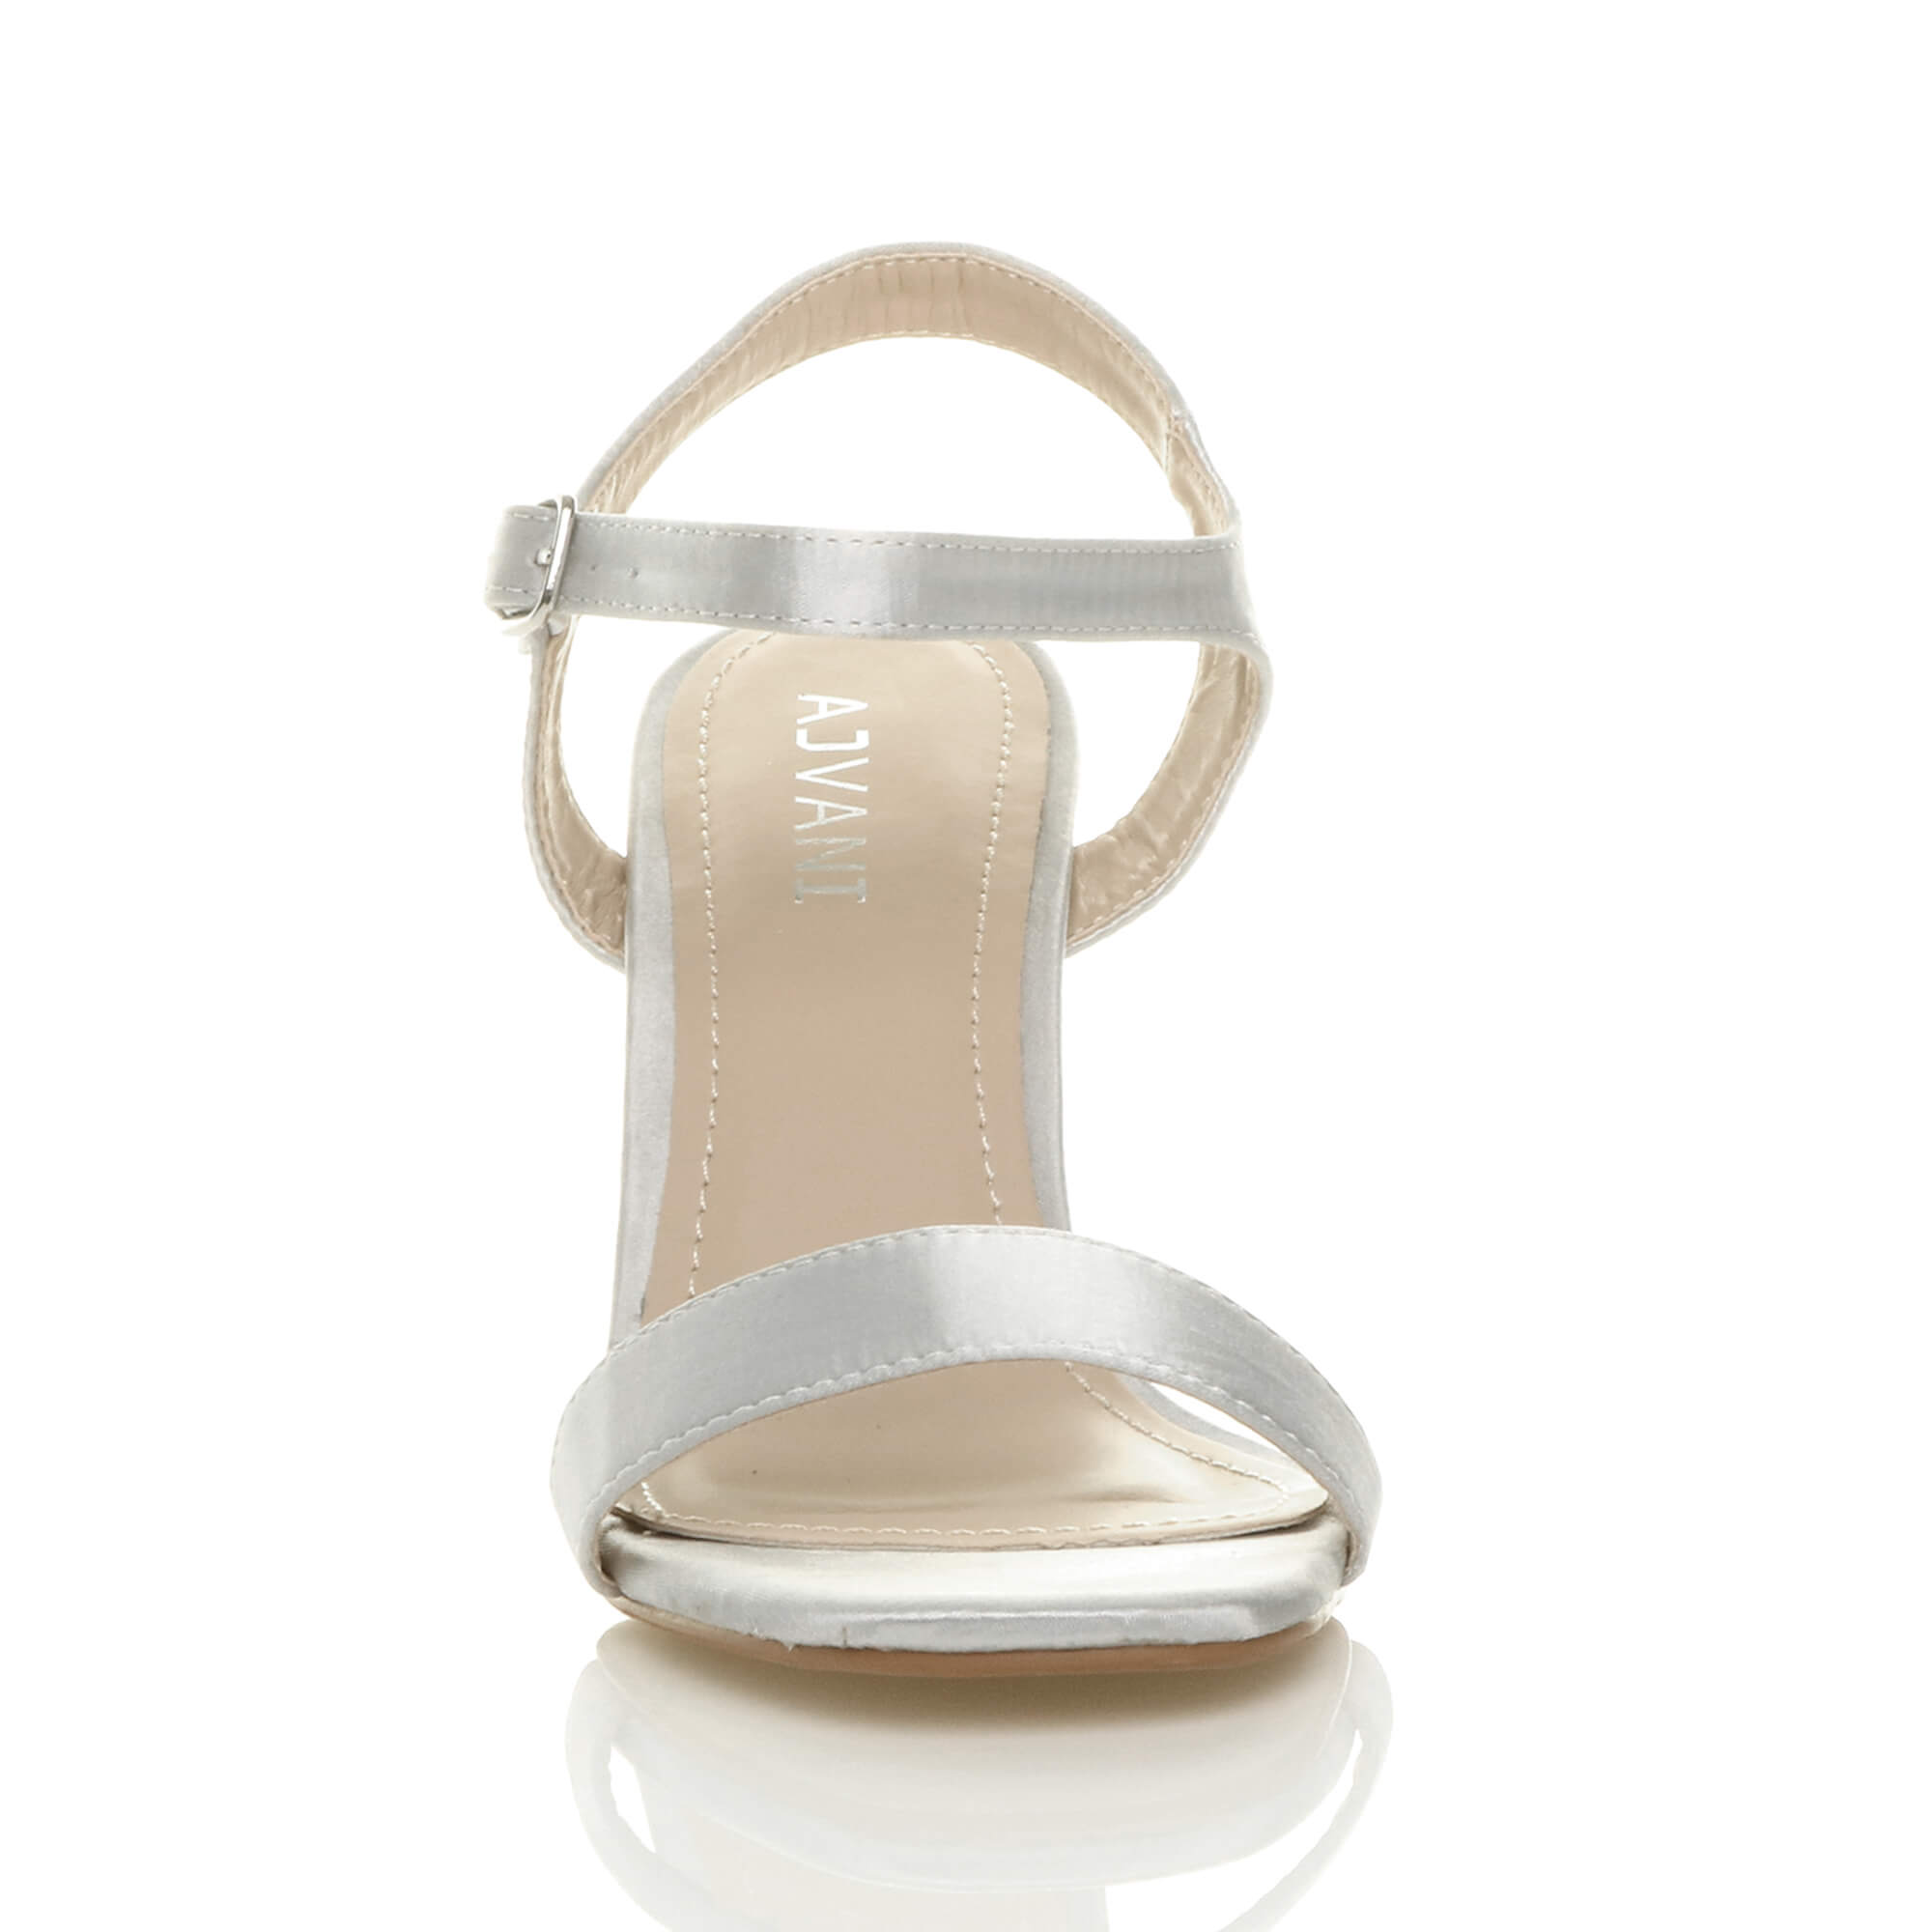 WOMENS-LADIES-HIGH-HEEL-BUCKLE-STRAPPY-BASIC-BARELY-THERE-SANDALS-SHOES-SIZE thumbnail 139